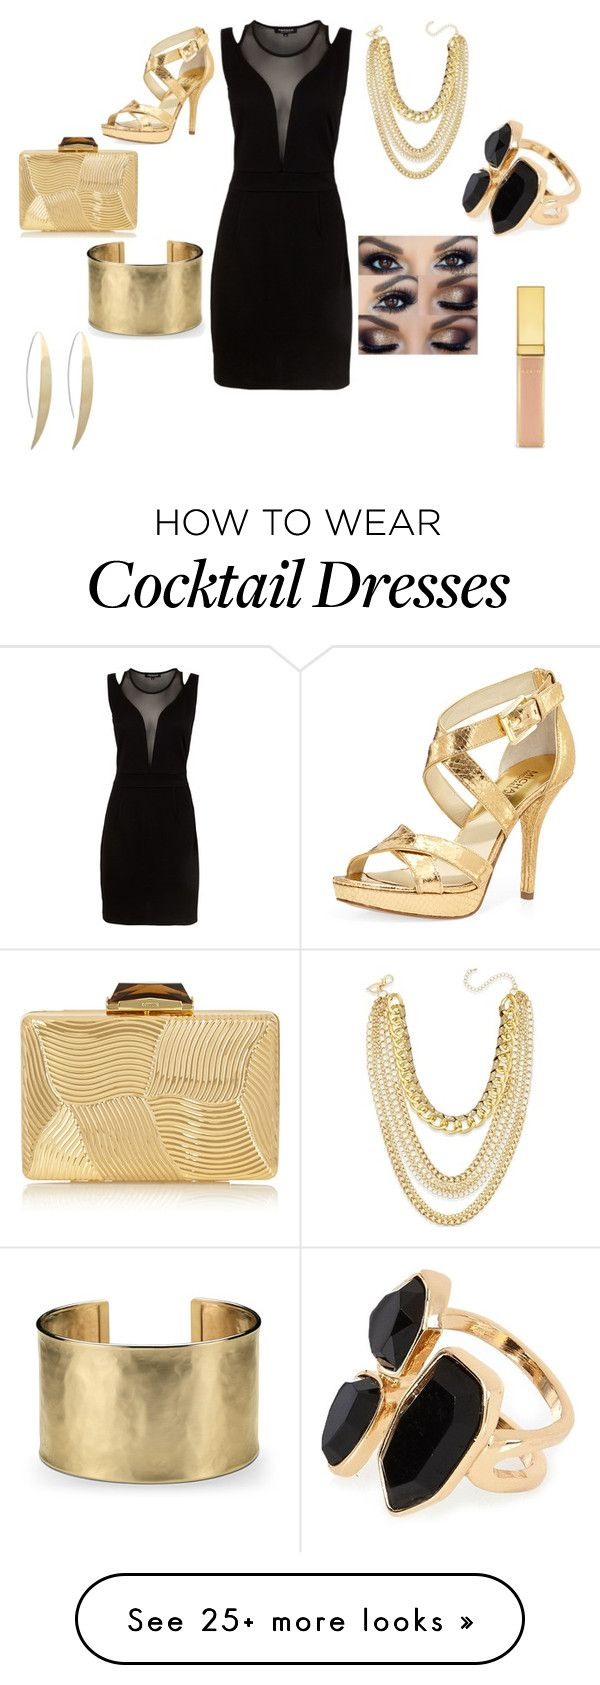 """Goin on a date"" by alexiscenter on Polyvore featuring Morgan, MICHAEL Michael Kors, KOTUR, Blue Nile, Thalia Sodi, River Island and AERIN"